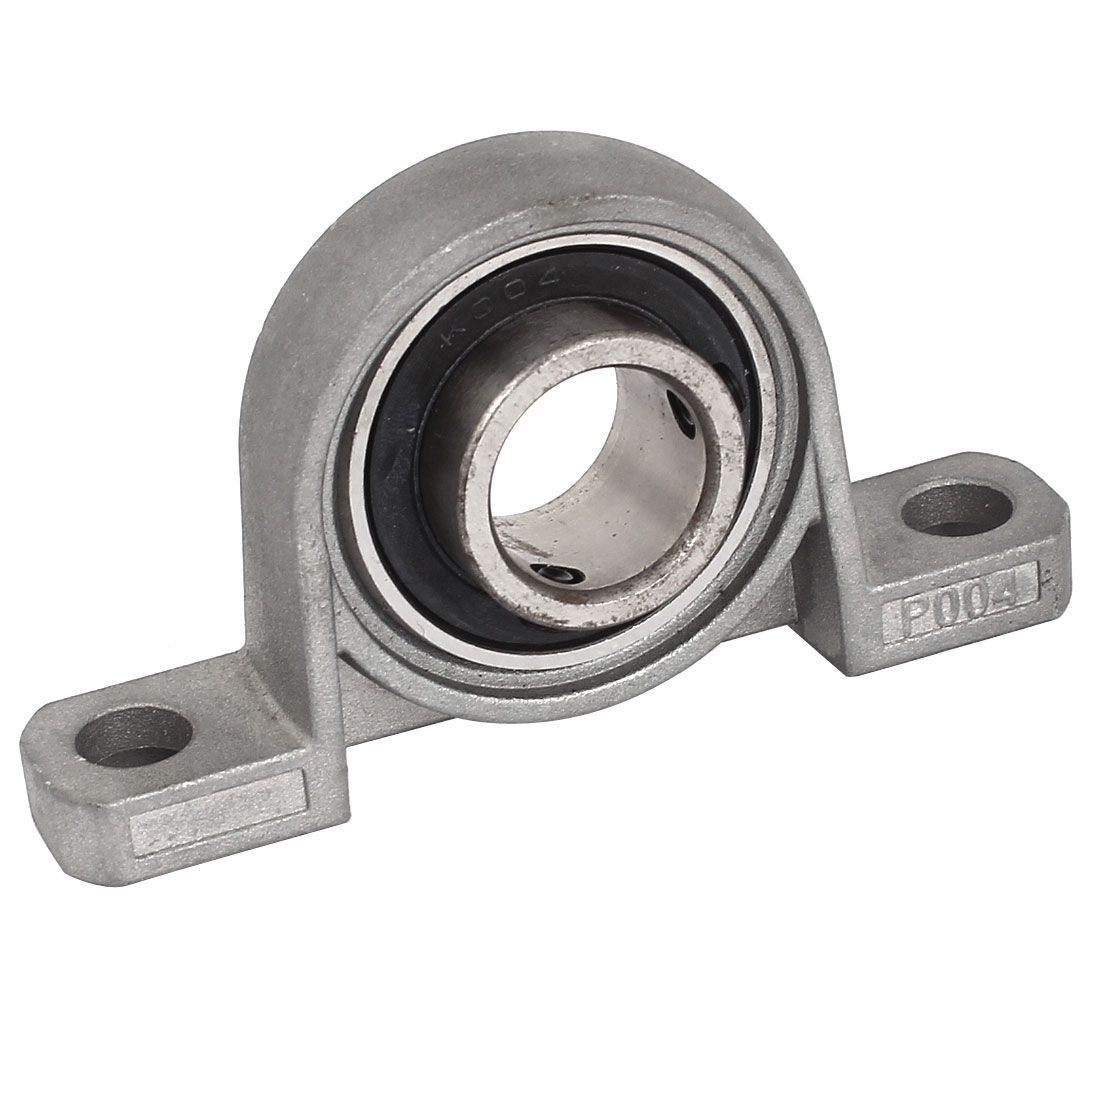 KP004 20mm Bore Self-aligning Vertical Mounted Flange Bearing Pillow Block